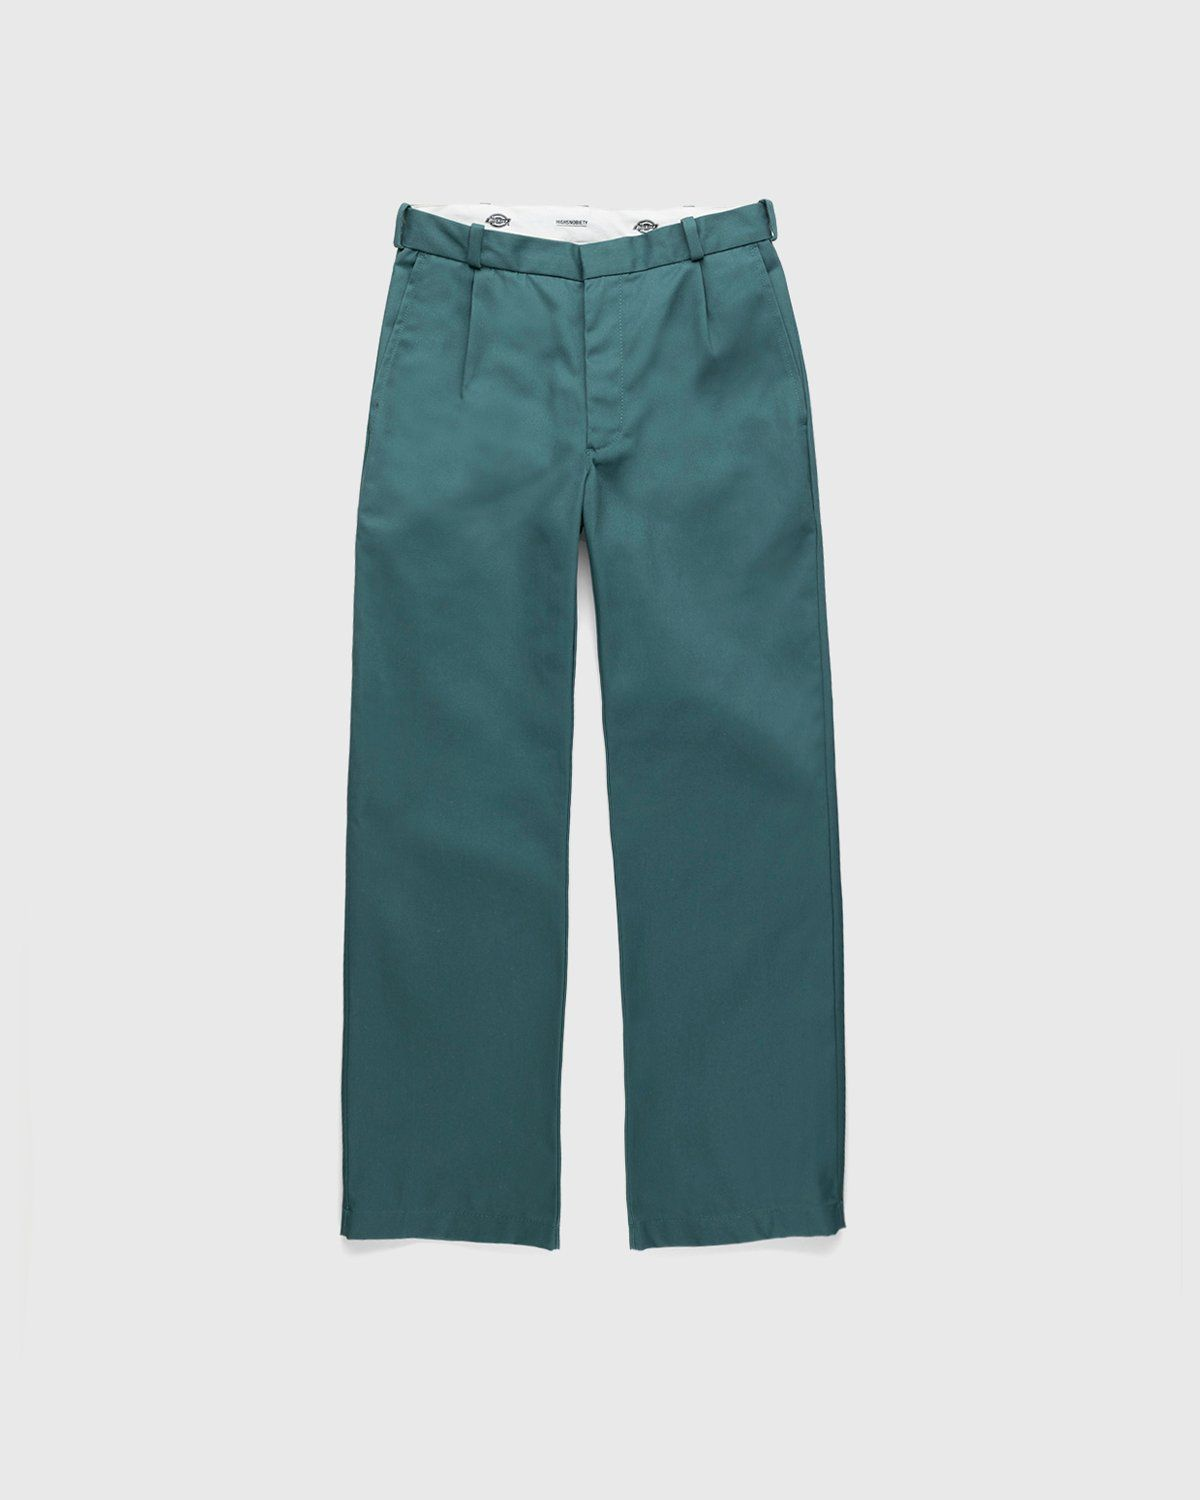 Highsnobiety x Dickies – Pleated Work Pants Lincoln Green - Image 1